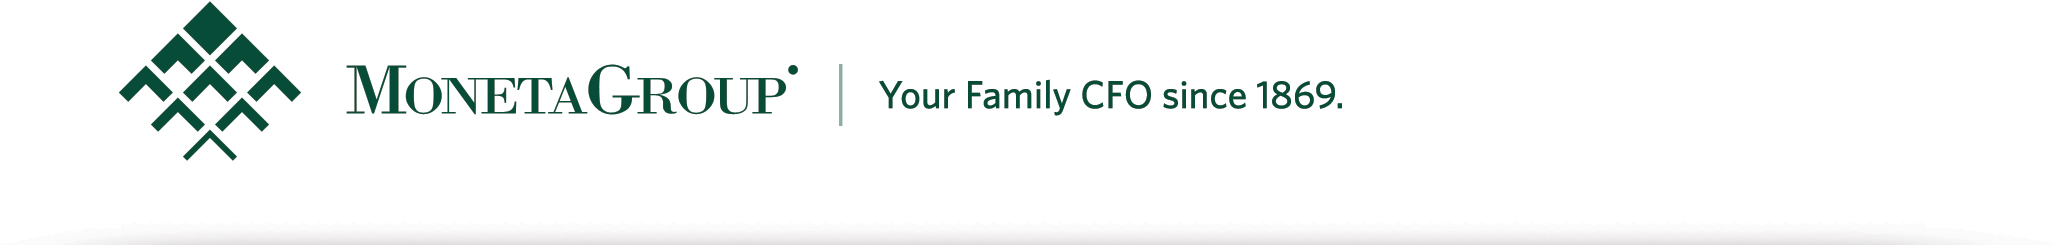 Moneta Group | Your Family CFO since 1869.